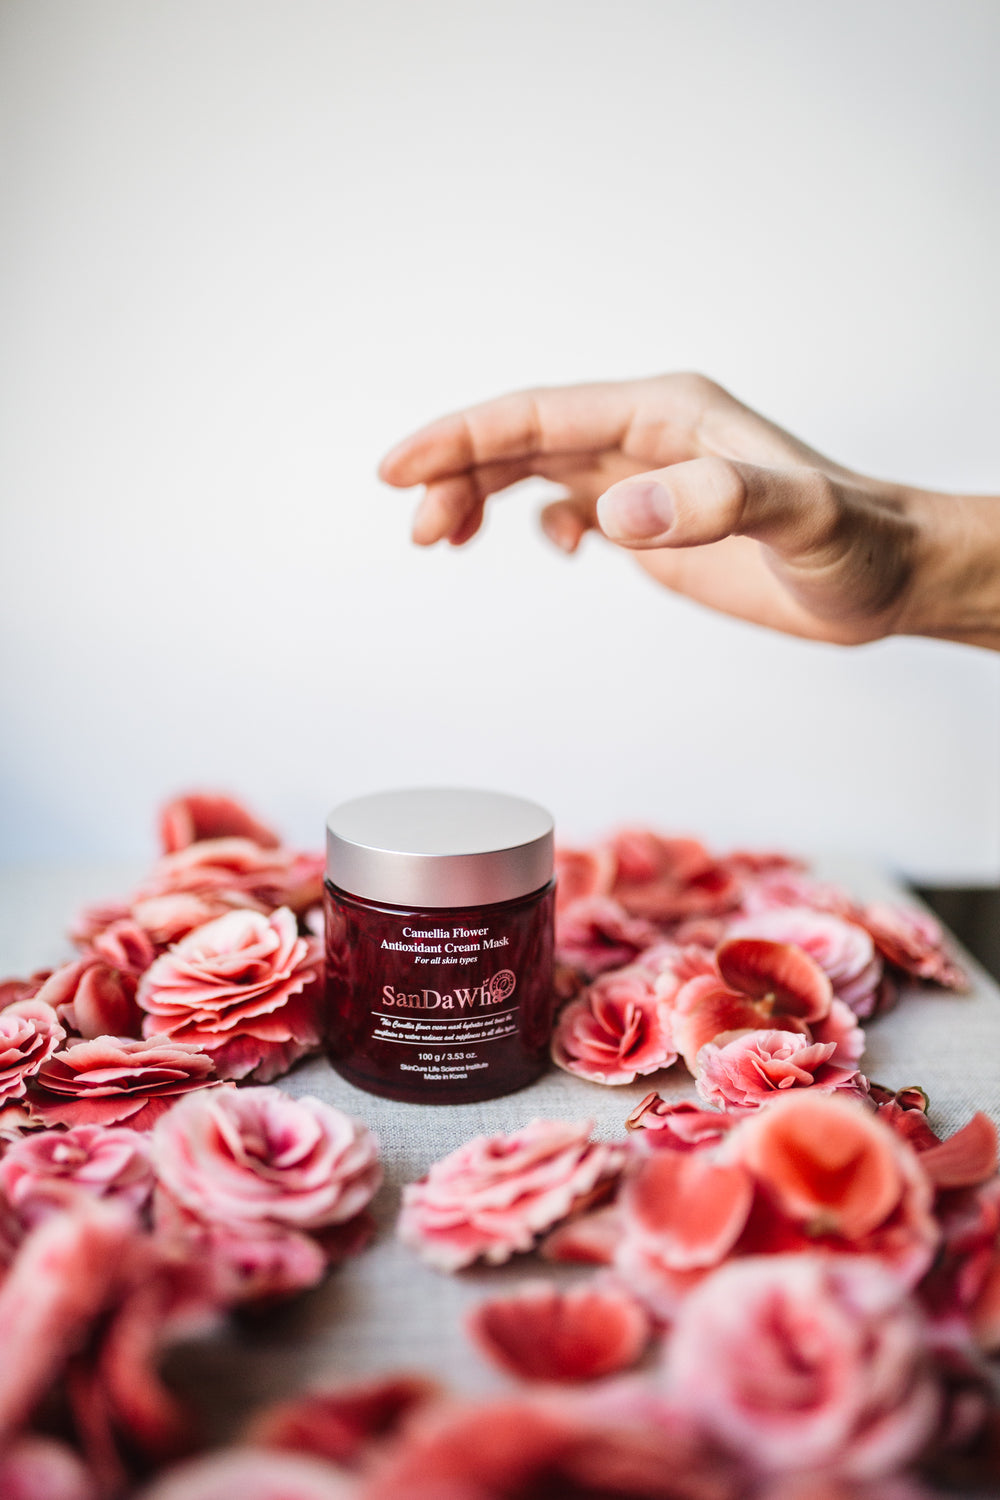 Camellia Flower Antioxidant Cream Mask 100g